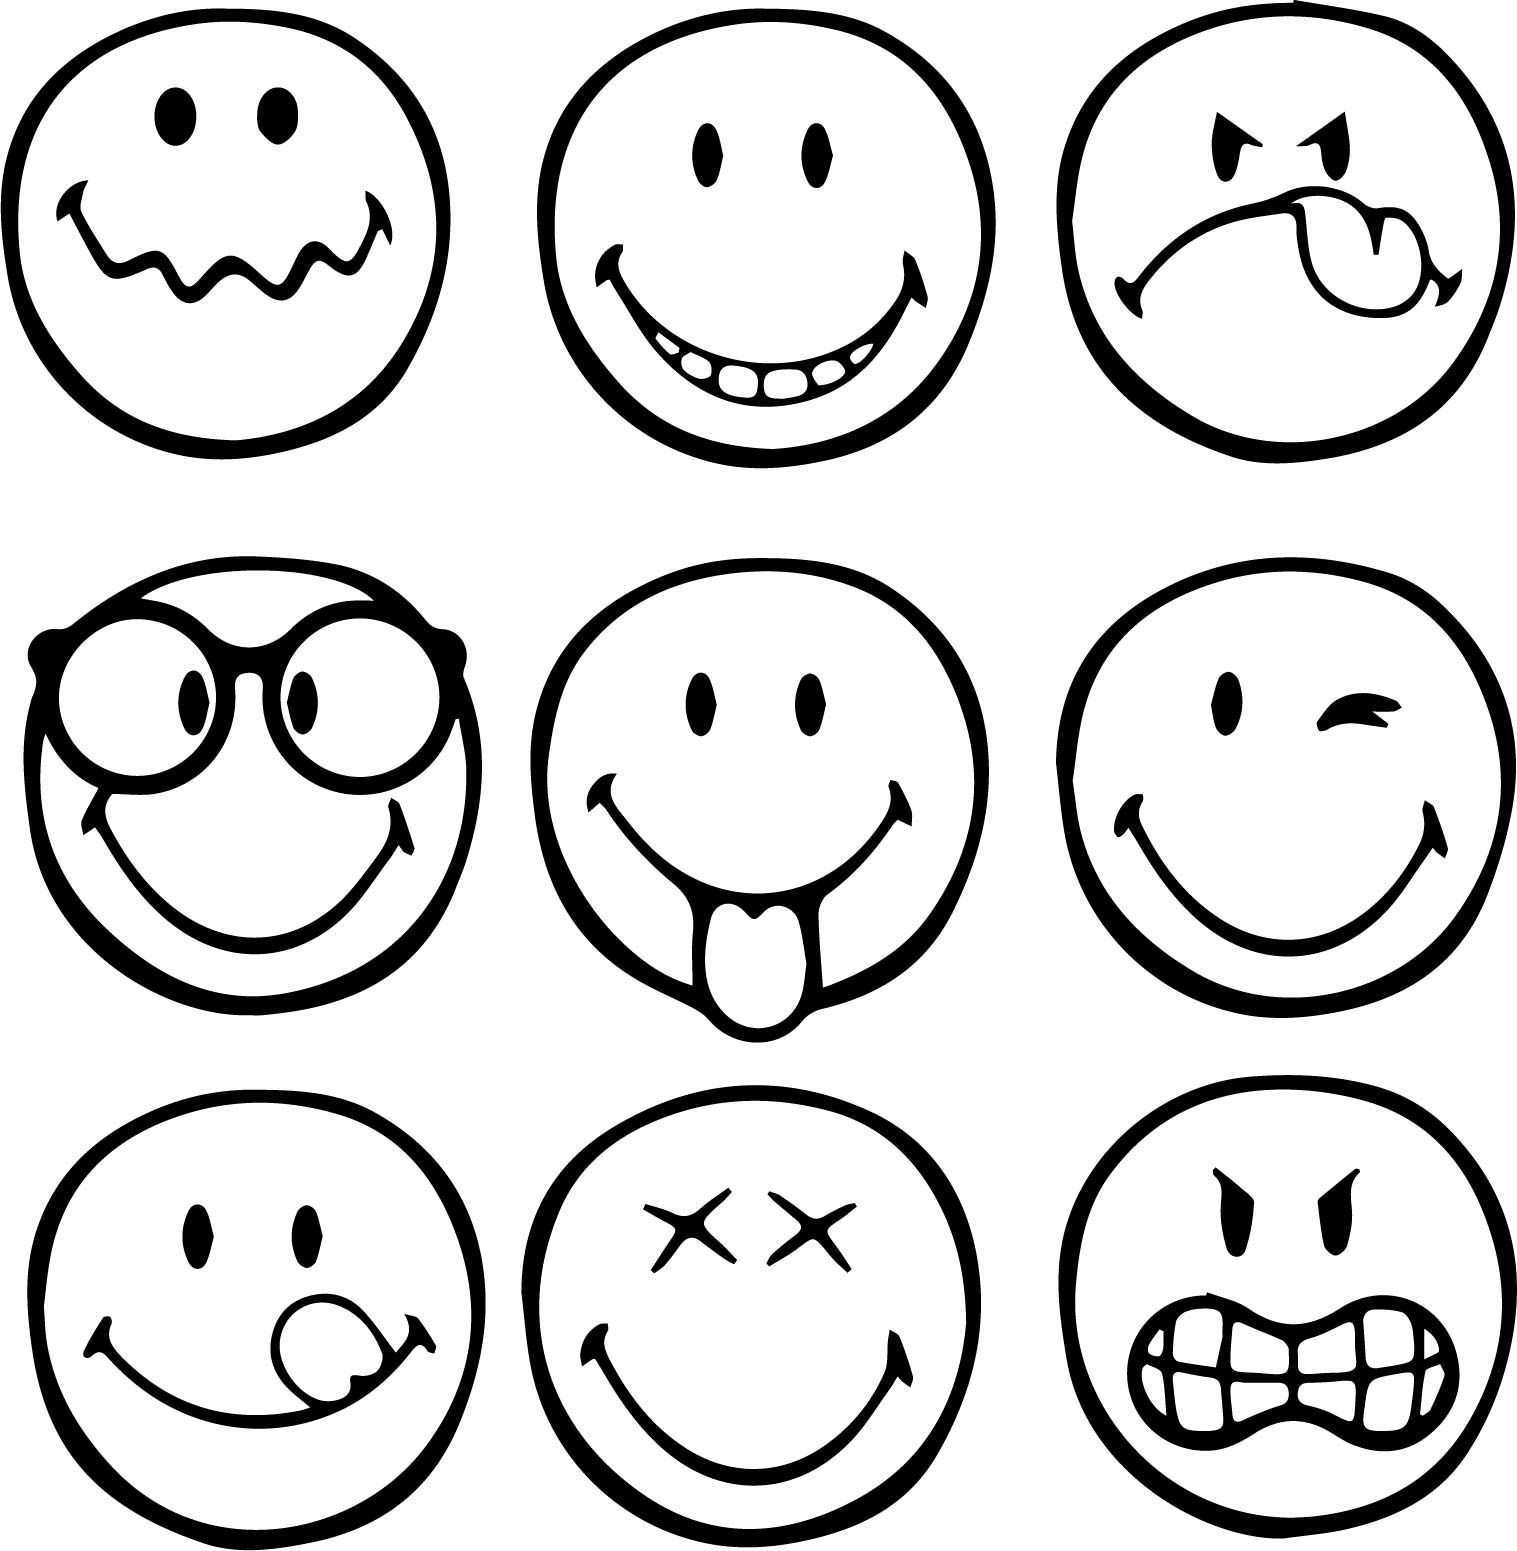 Nice First Graphical Emoticons Smiley Coloring Page Mini Drawings Art Drawings For Kids Doodle Drawings